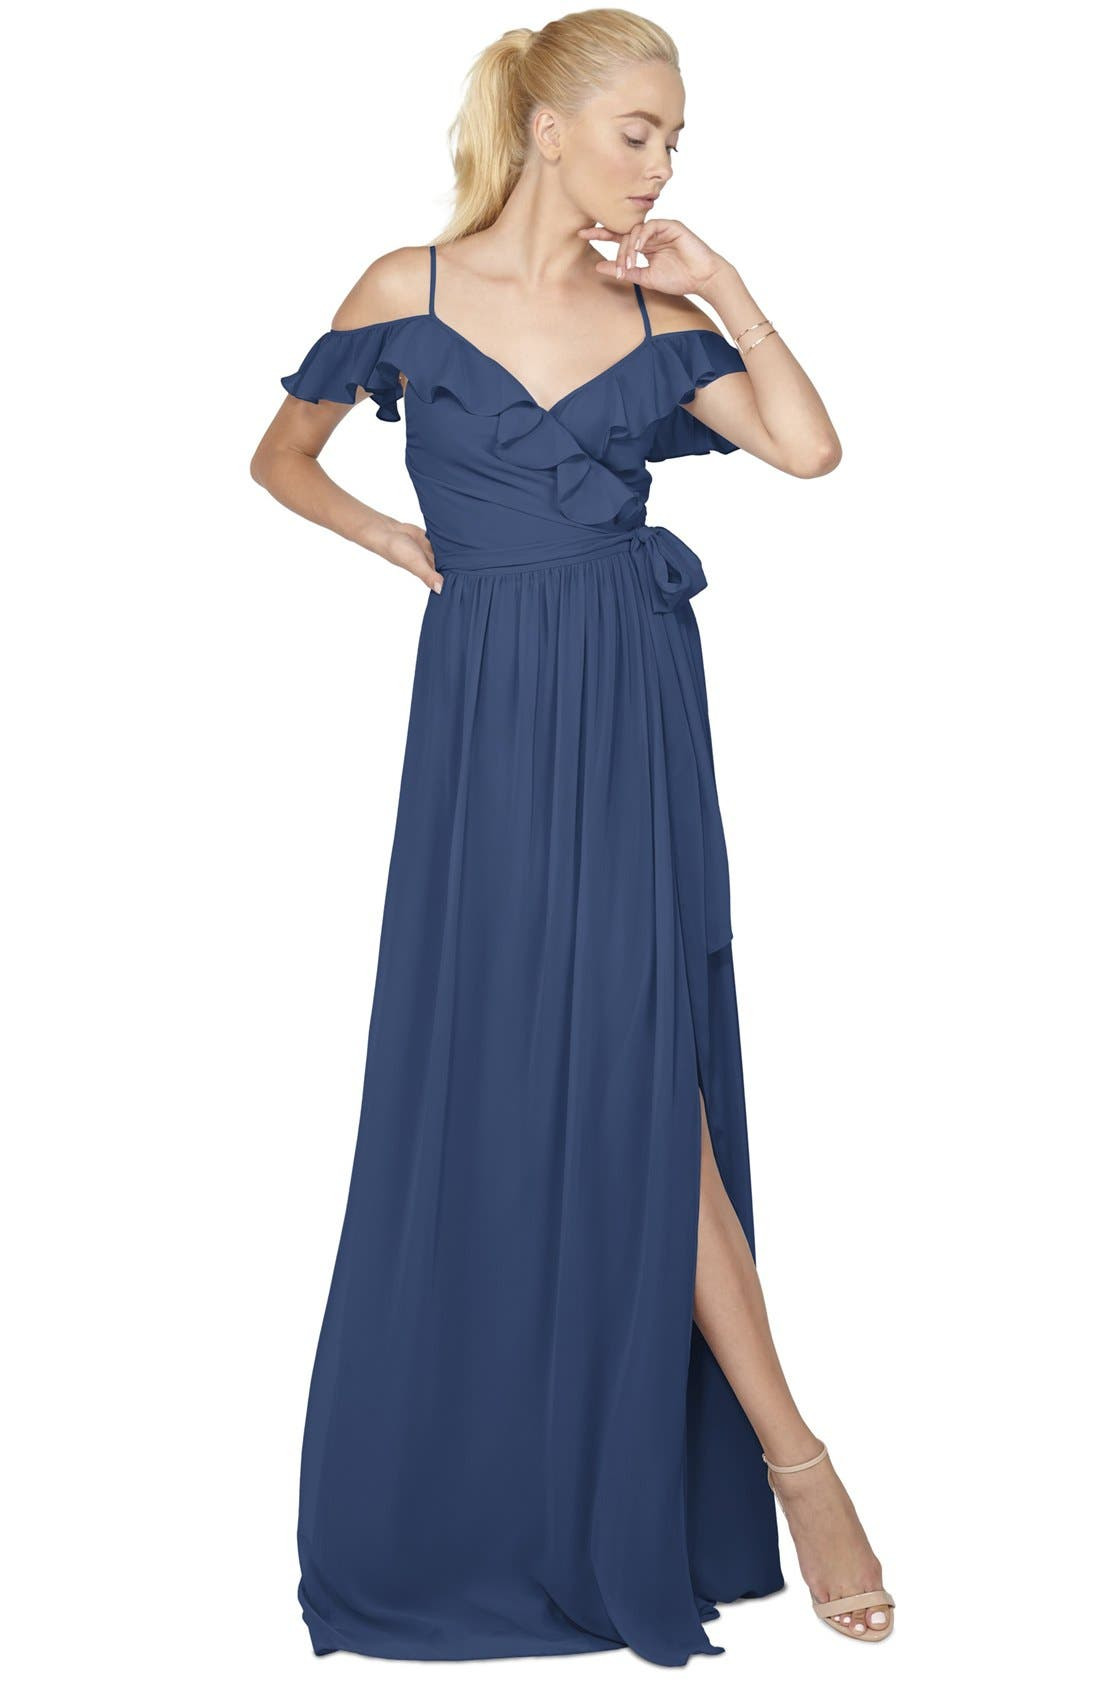 Ceremony by Joanna August 'Portia' Off the Shoulder Ruffle Wrap Chiffon Gown